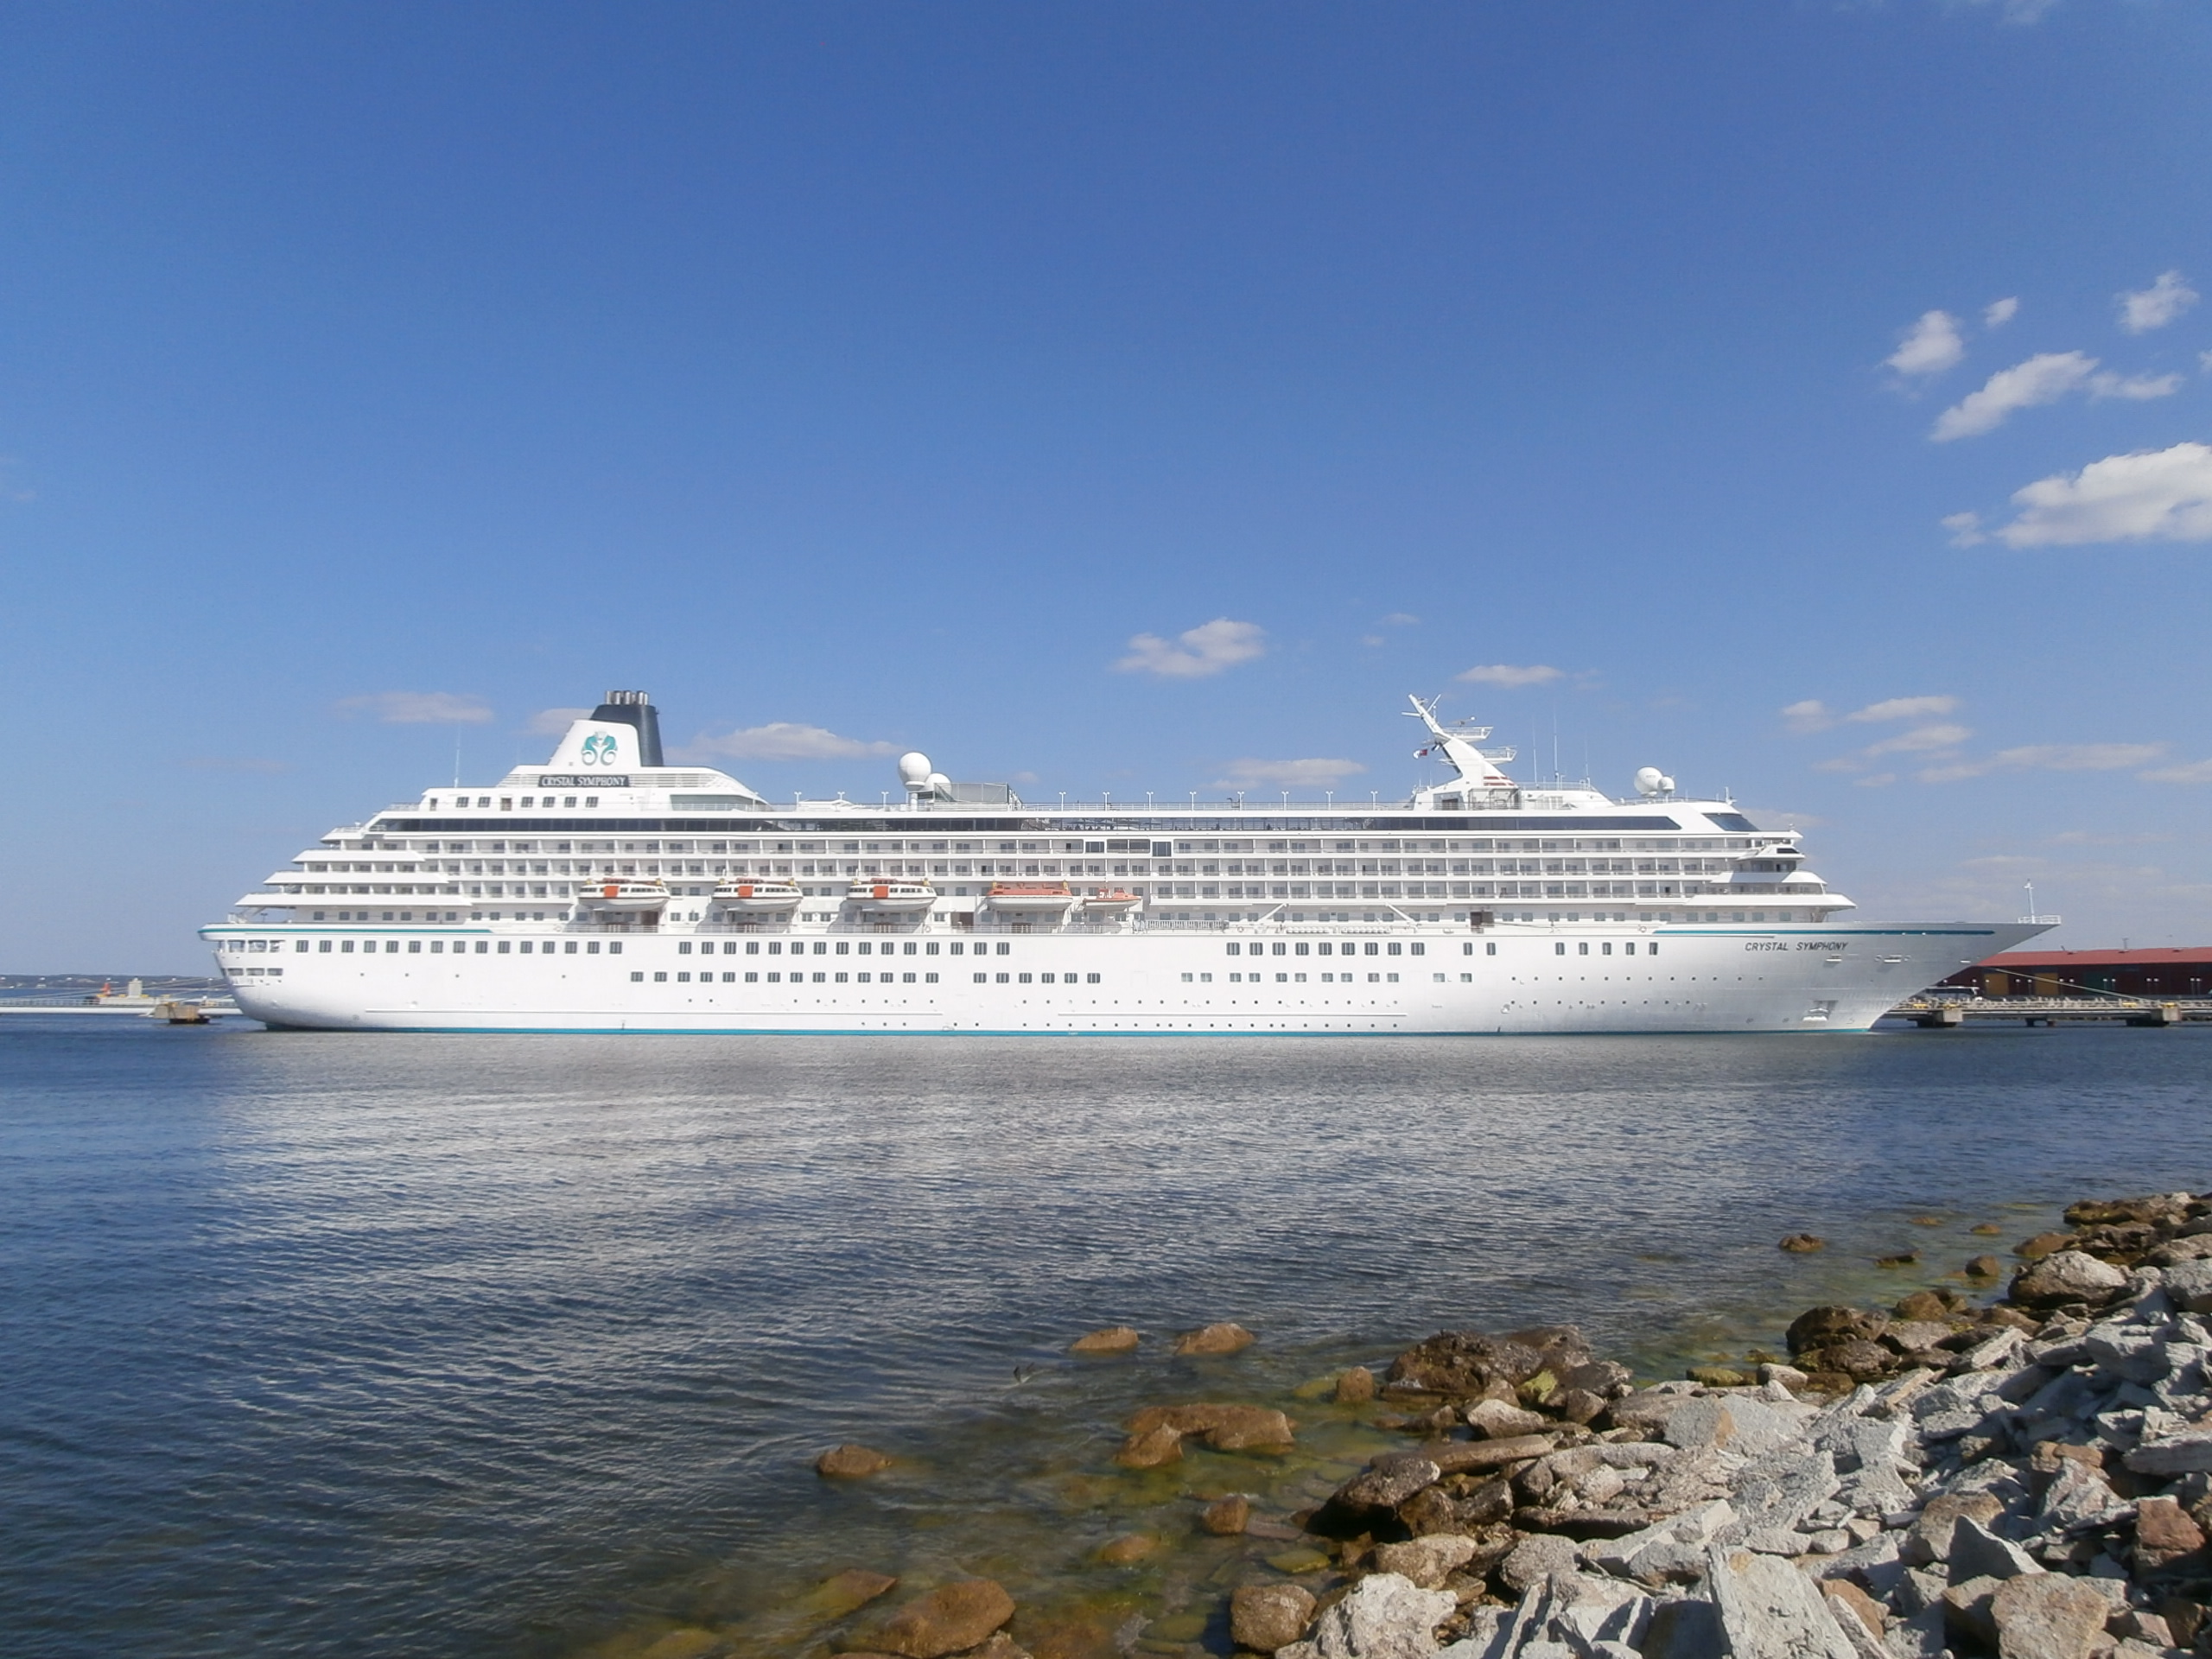 FileCrystal Symphony Starboard Side Port Of Tallinn August - Port or starboard side of cruise ship